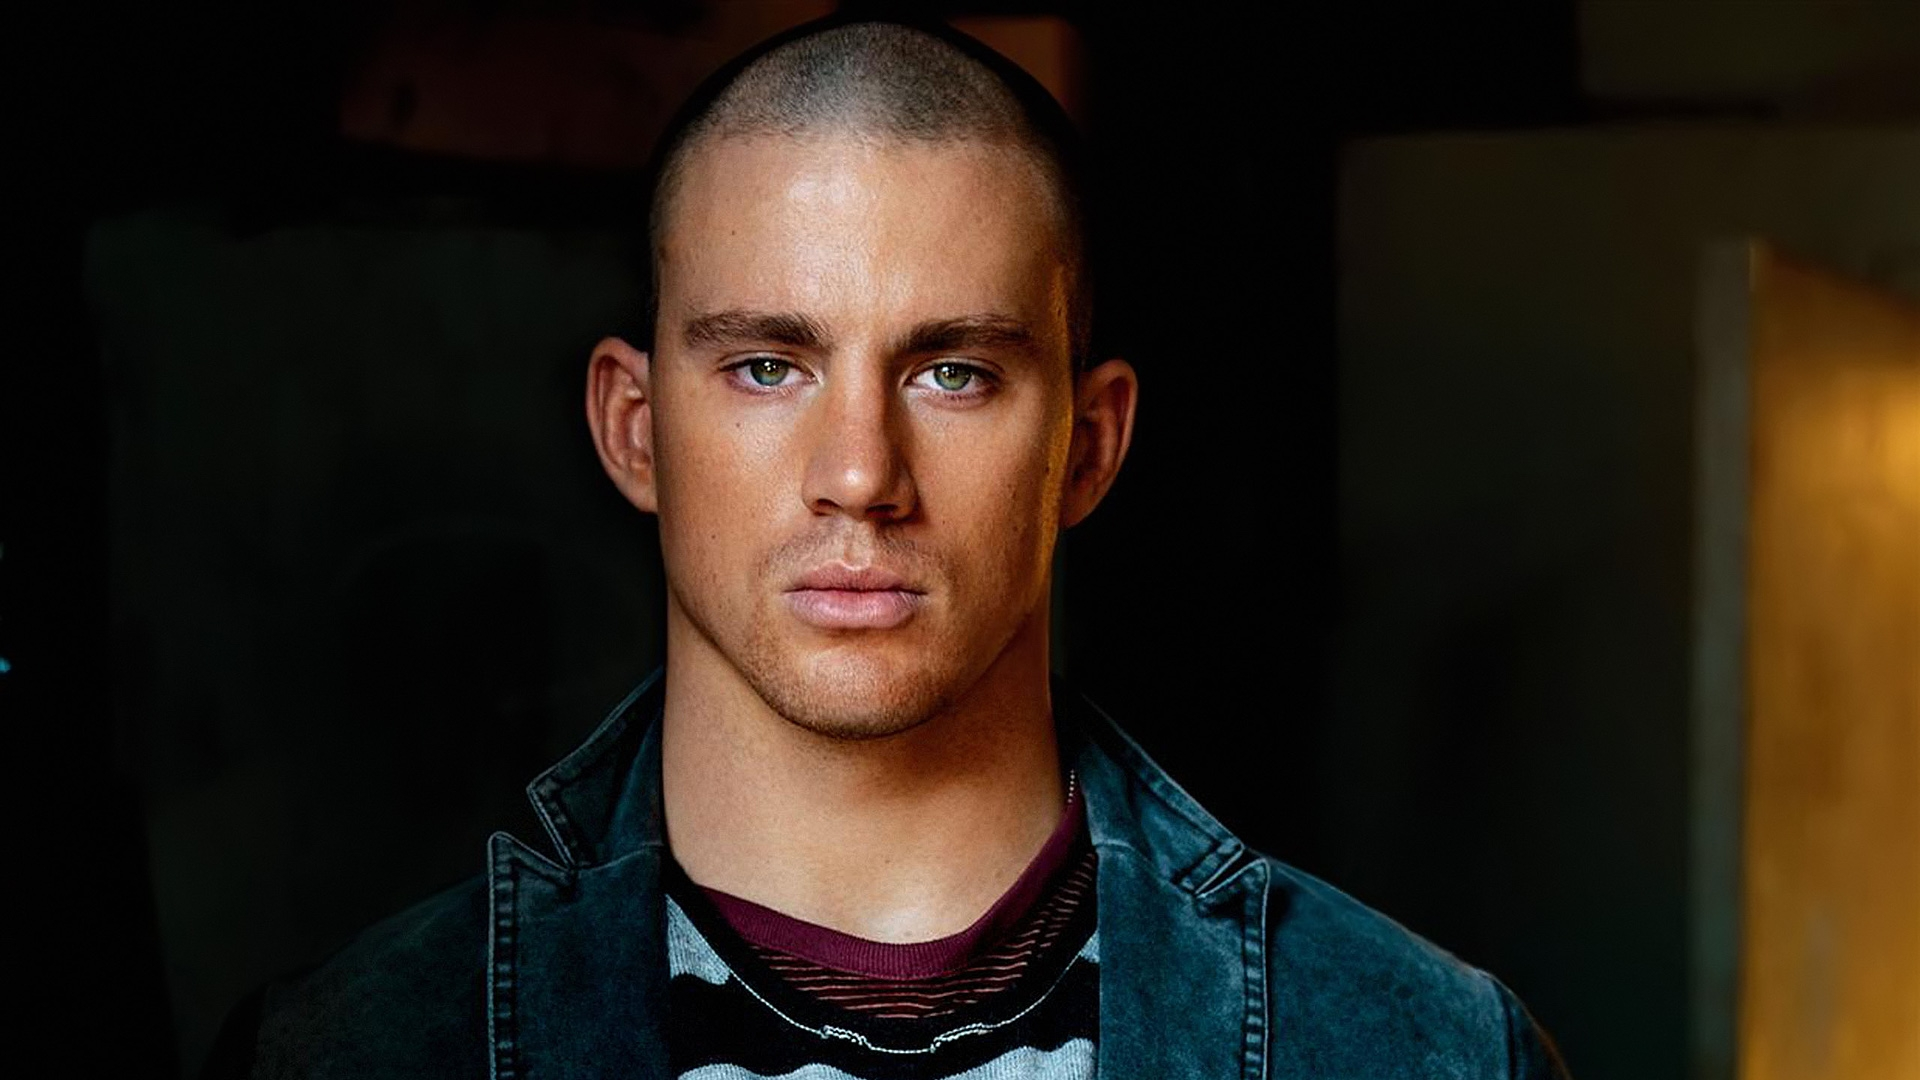 http://3.bp.blogspot.com/-z1gGy_HGQNQ/UFbAzr4gQII/AAAAAAAAJ8E/jk5FIVZhAbM/s0/channing-tatum-beautiful-eyes-1920x1080-wallpaper.jpg